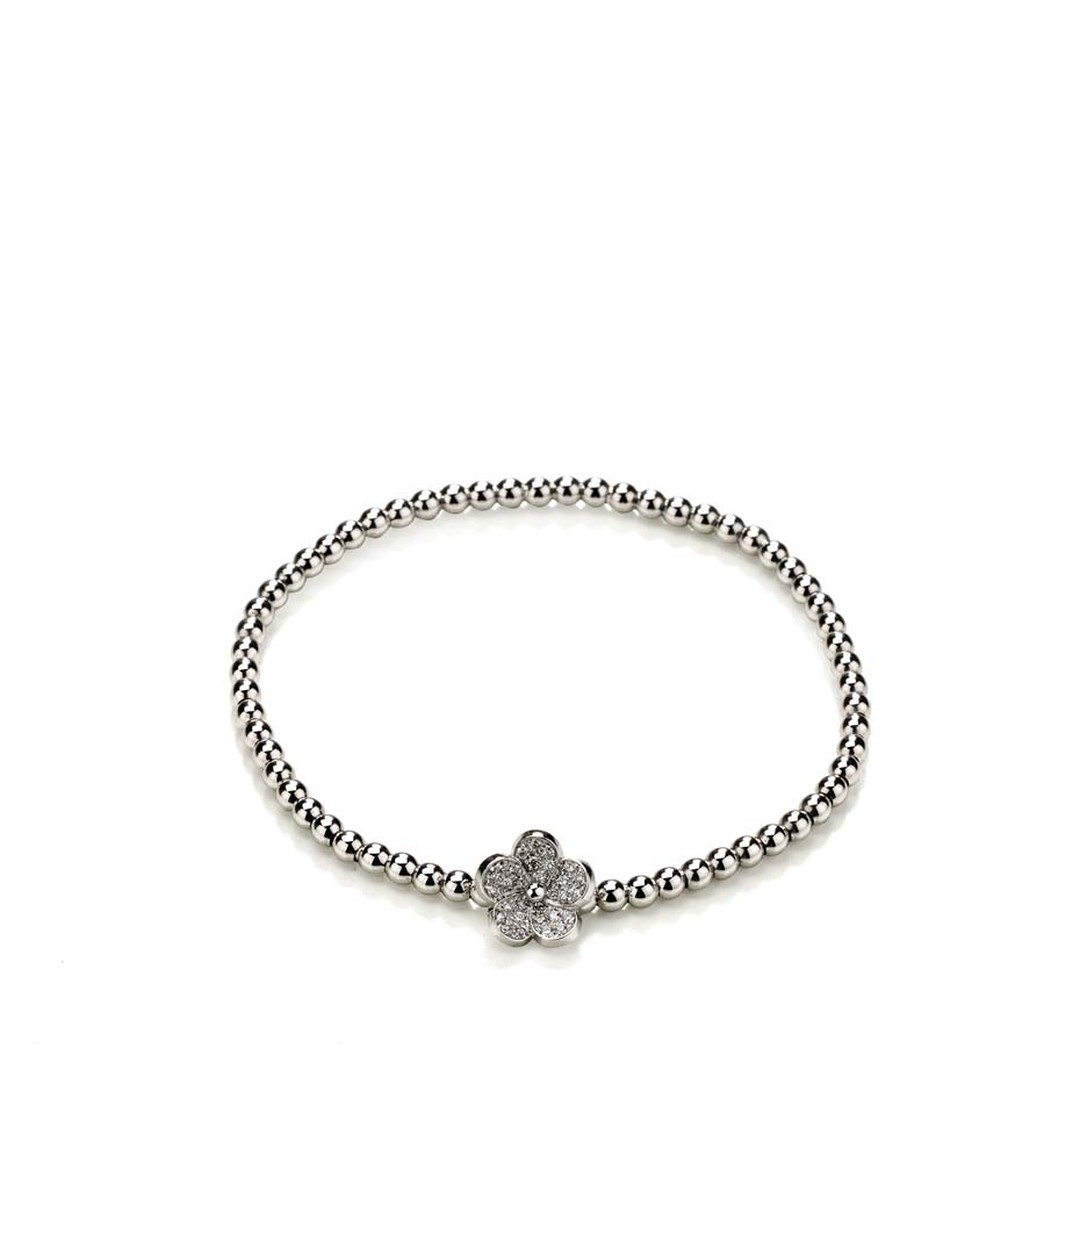 Meissen Blossom collection beaded bracelet in white gold with a flower filled with pavé diamonds.